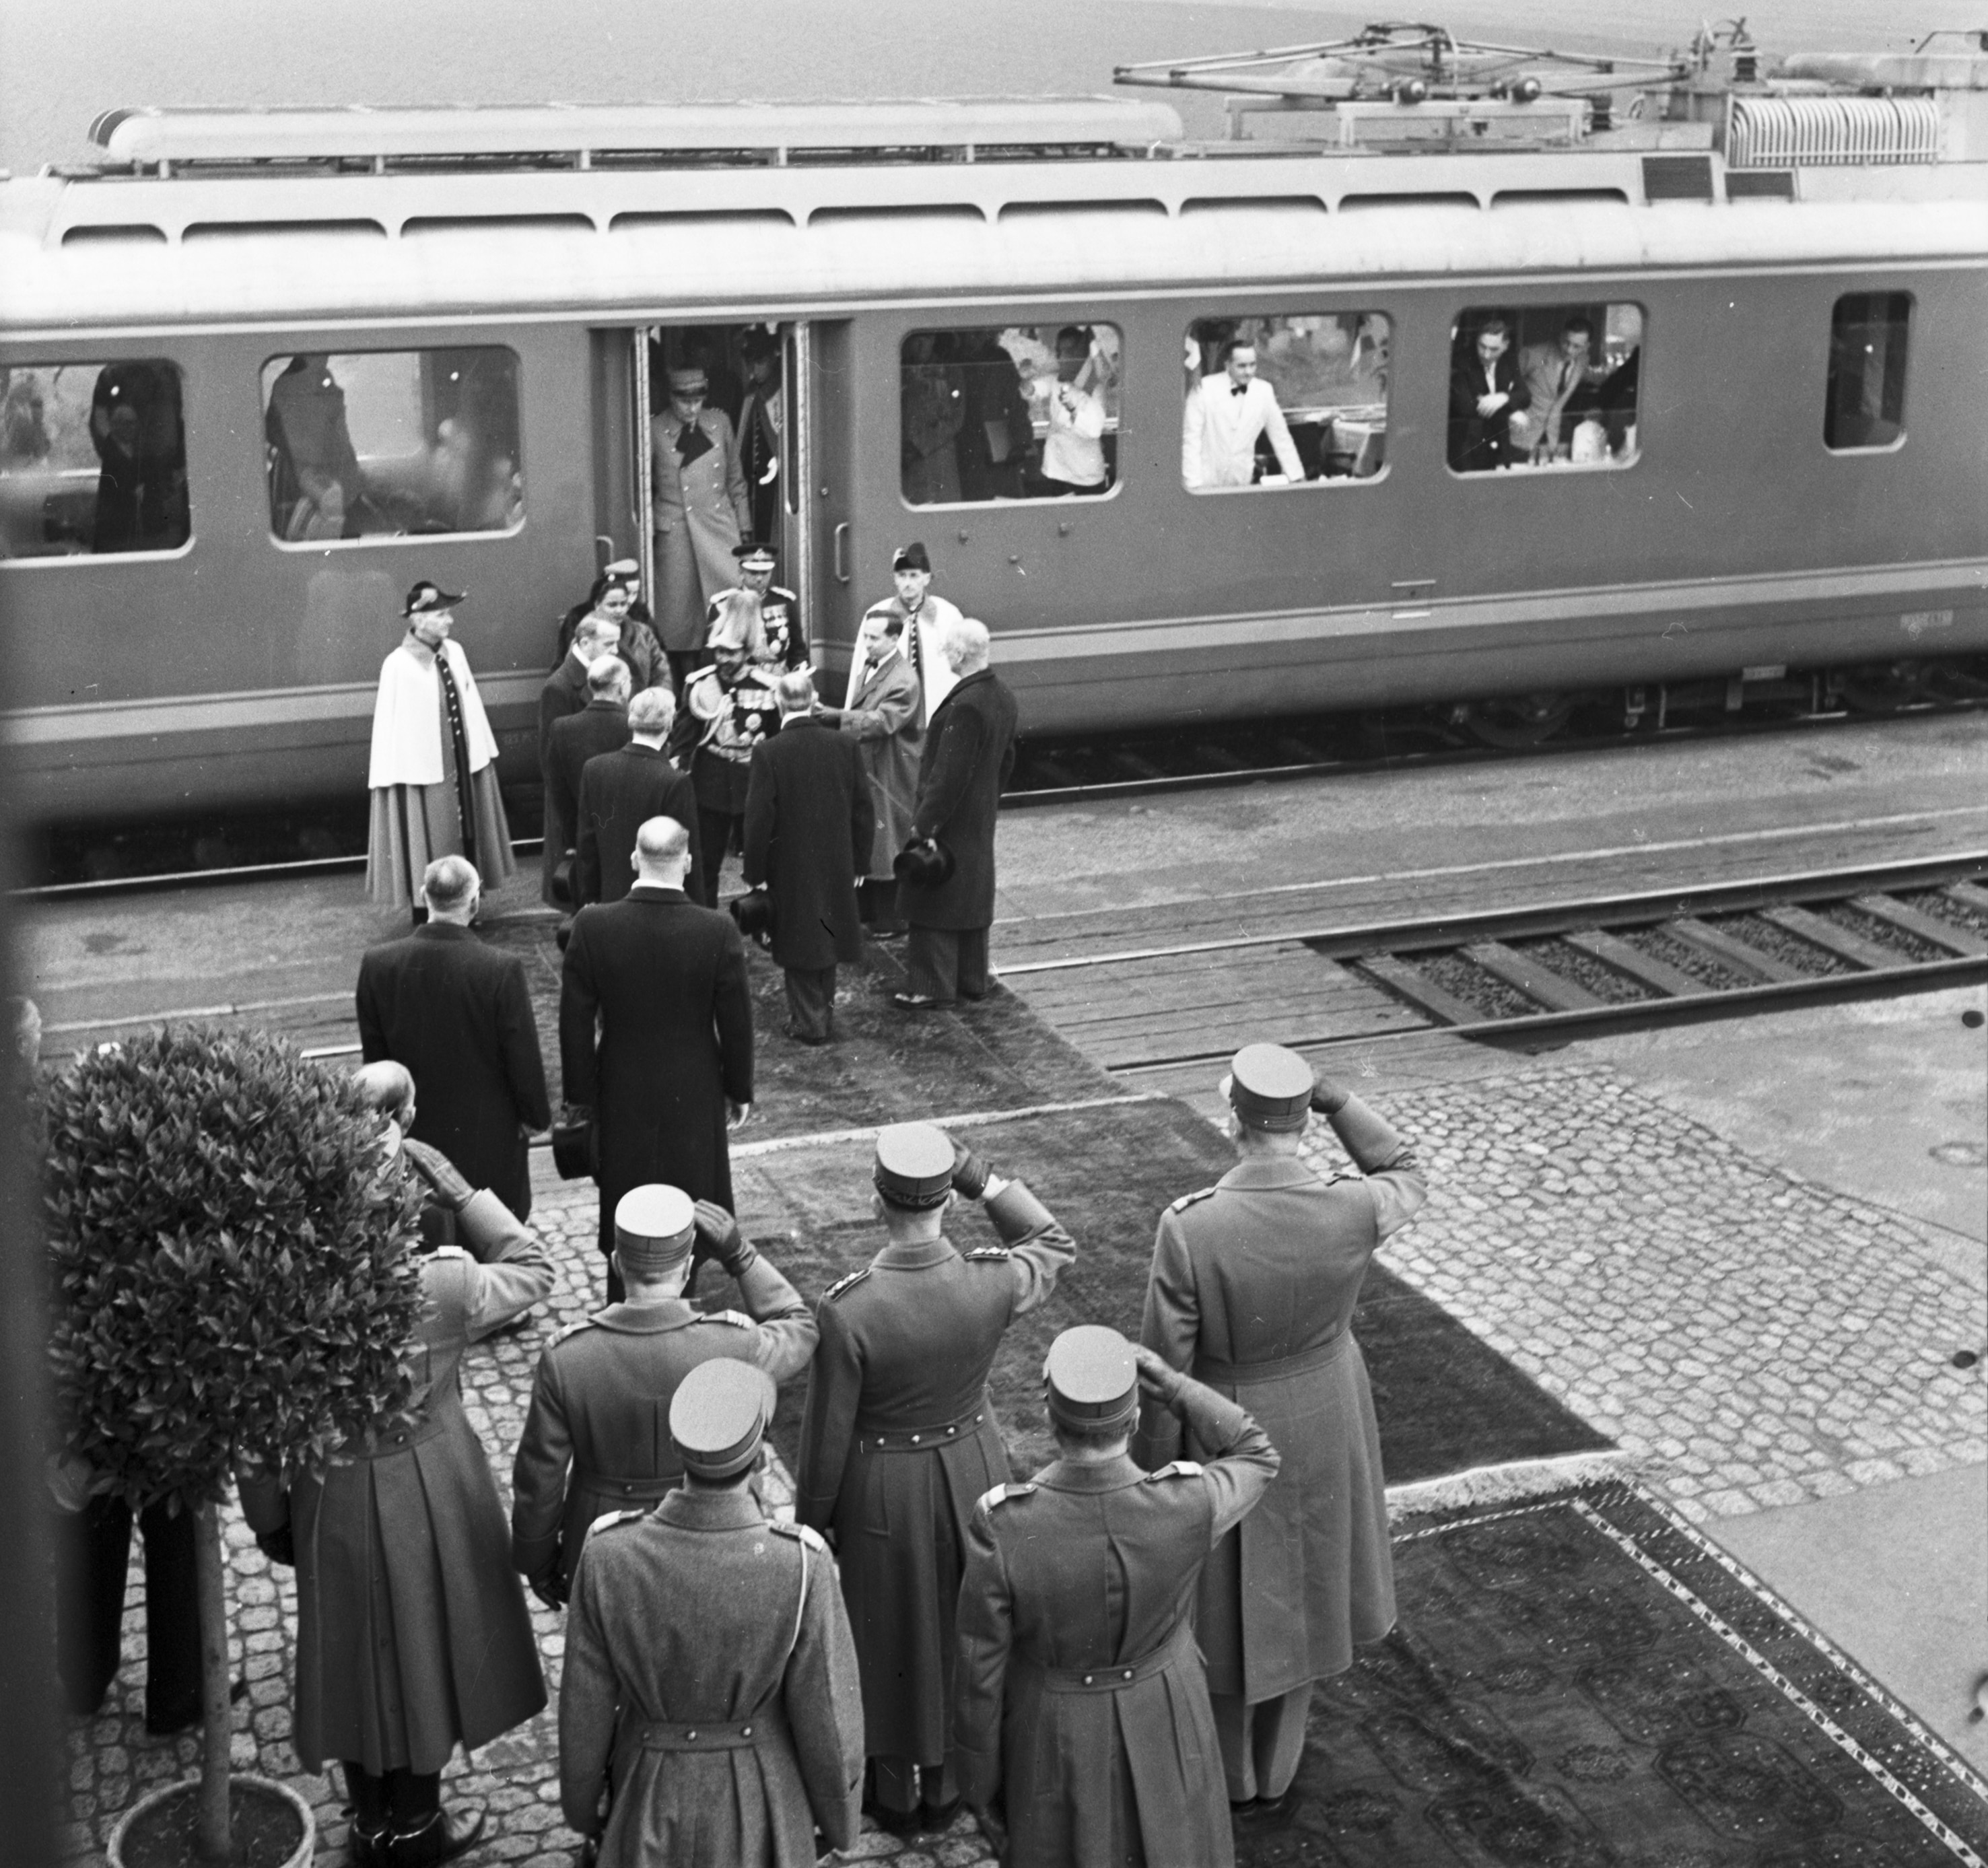 Haile Selassie arrives by train on November 25,1954  (Walter Nydegger/Cantonal Bern archives)